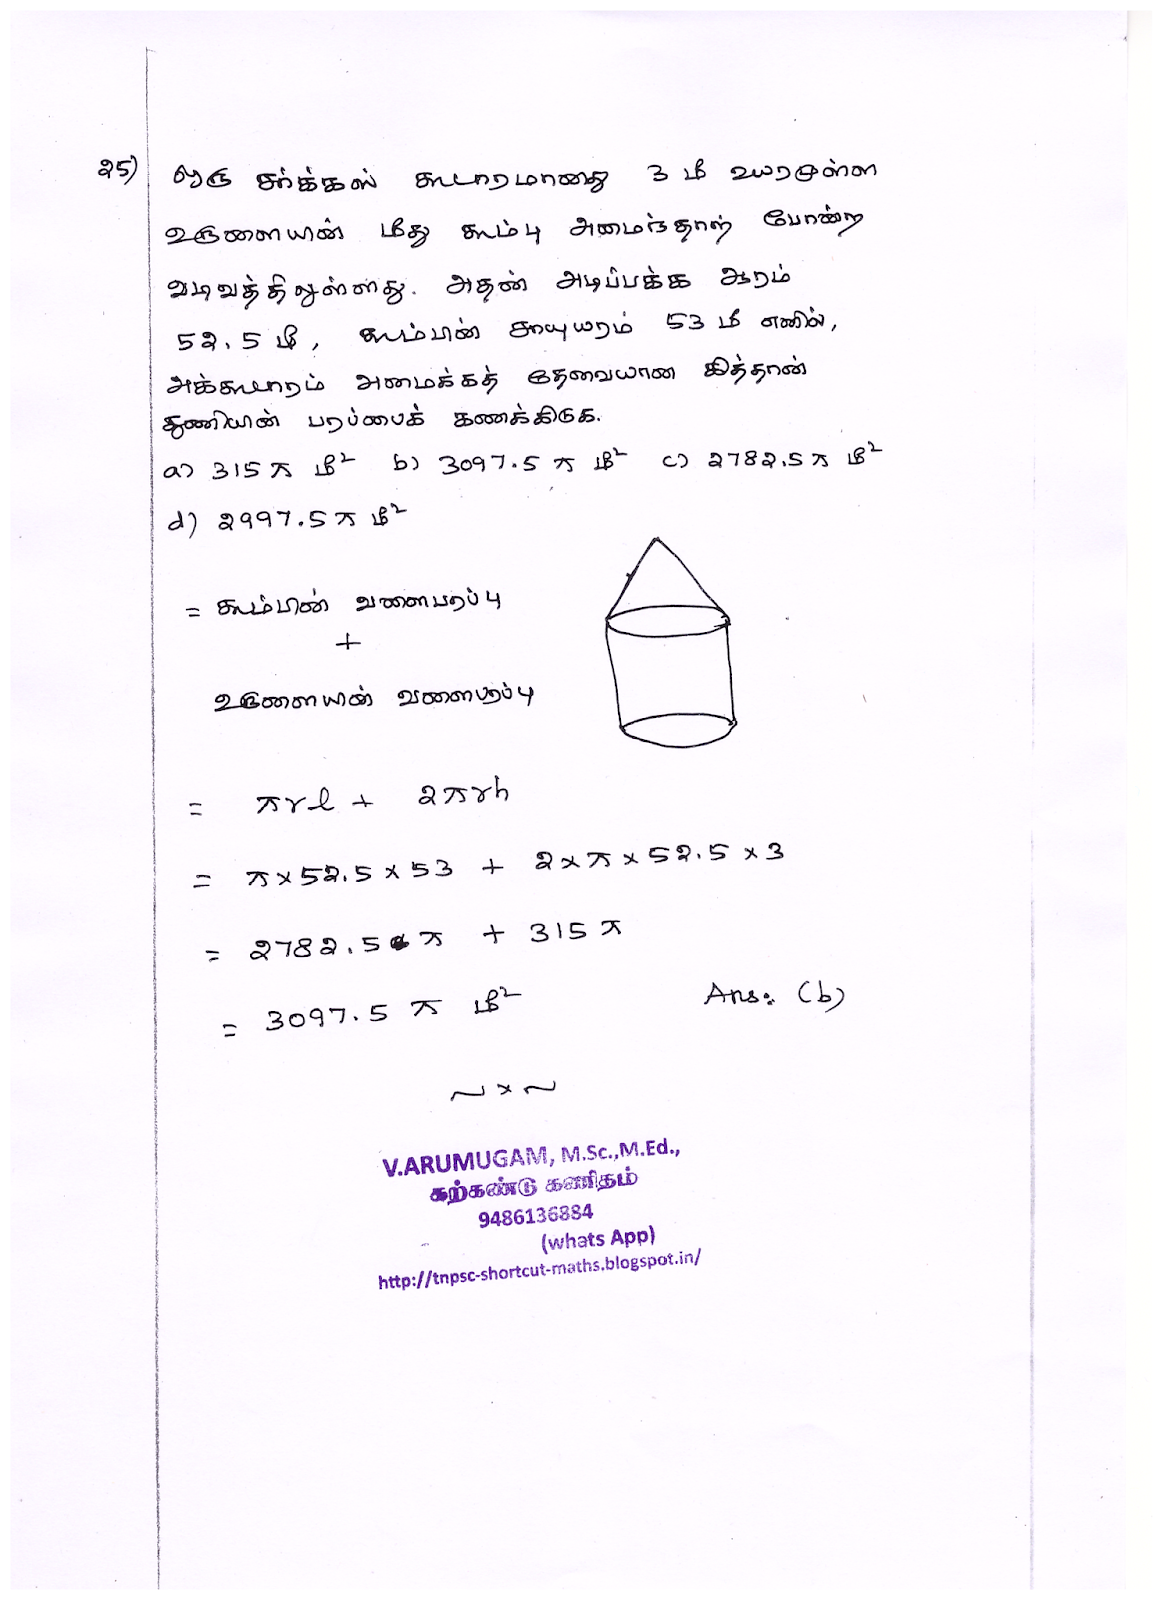 TNPSC - 2018 - Q - 14 - Combined Civil Services Examination –II (Group - II Services) (Interview posts) Preliminary Examination - EXAM DATE: 11.11.2018